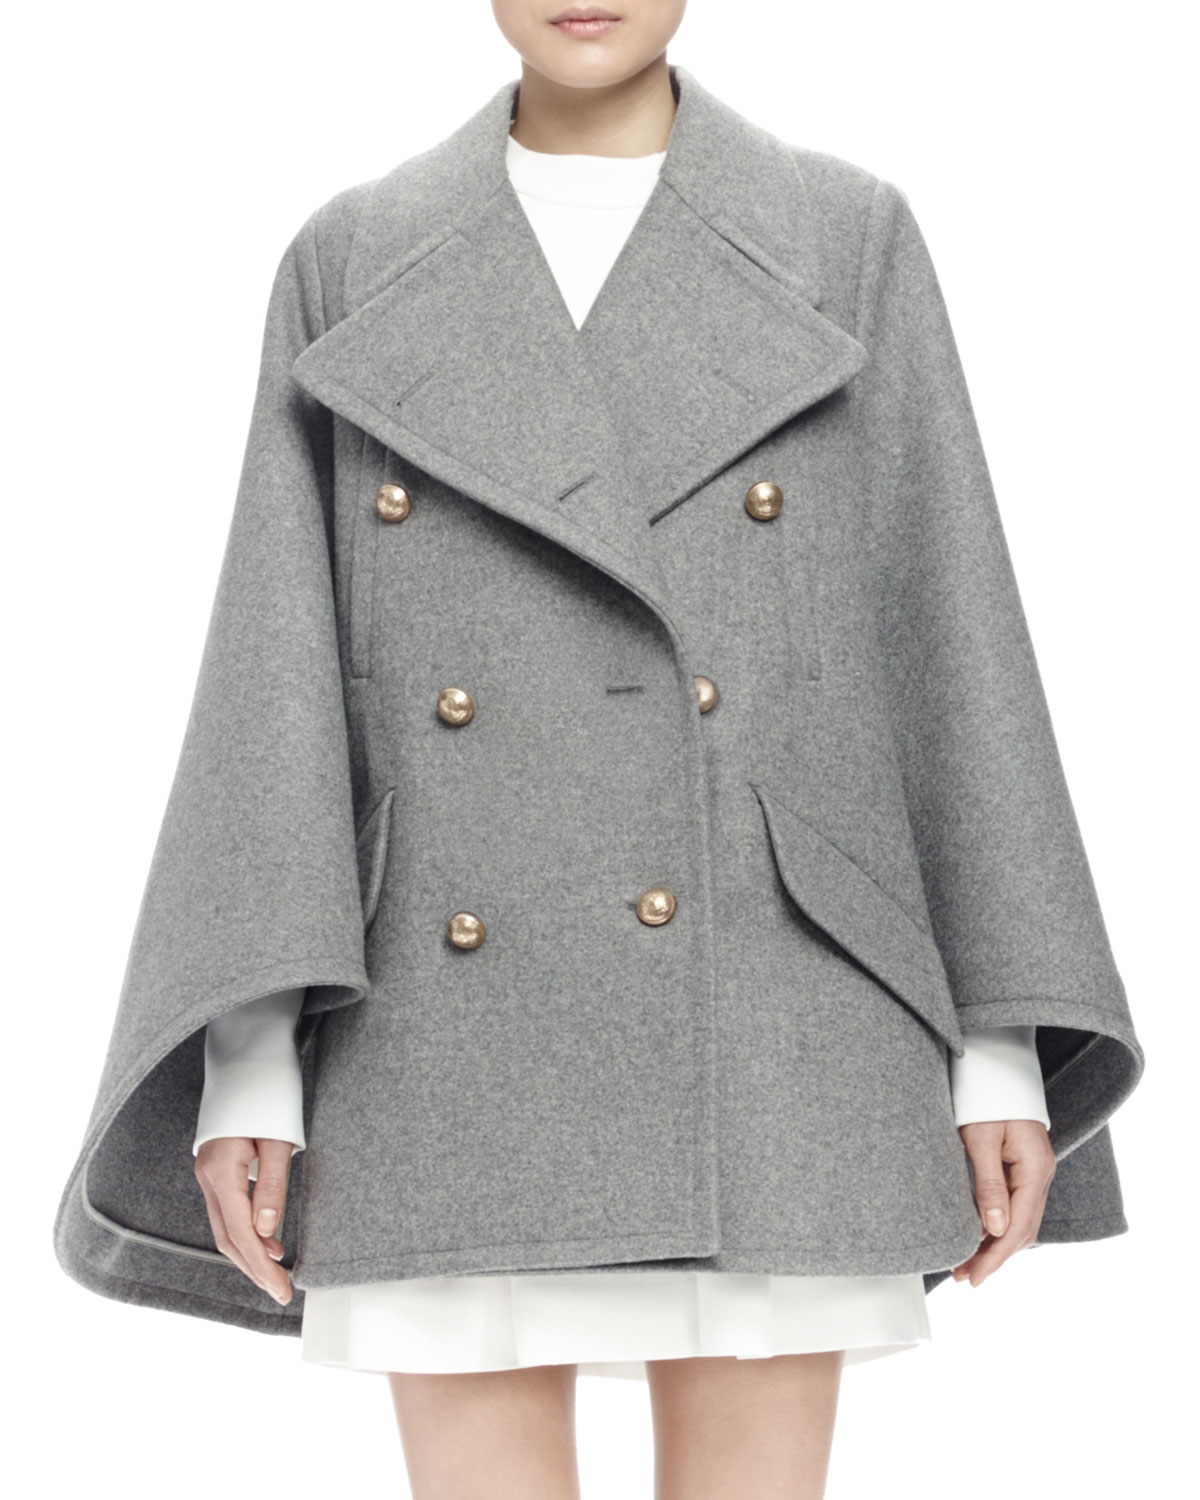 Double-Breasted Cape Coat, Gray, Size: 34 - Chloe